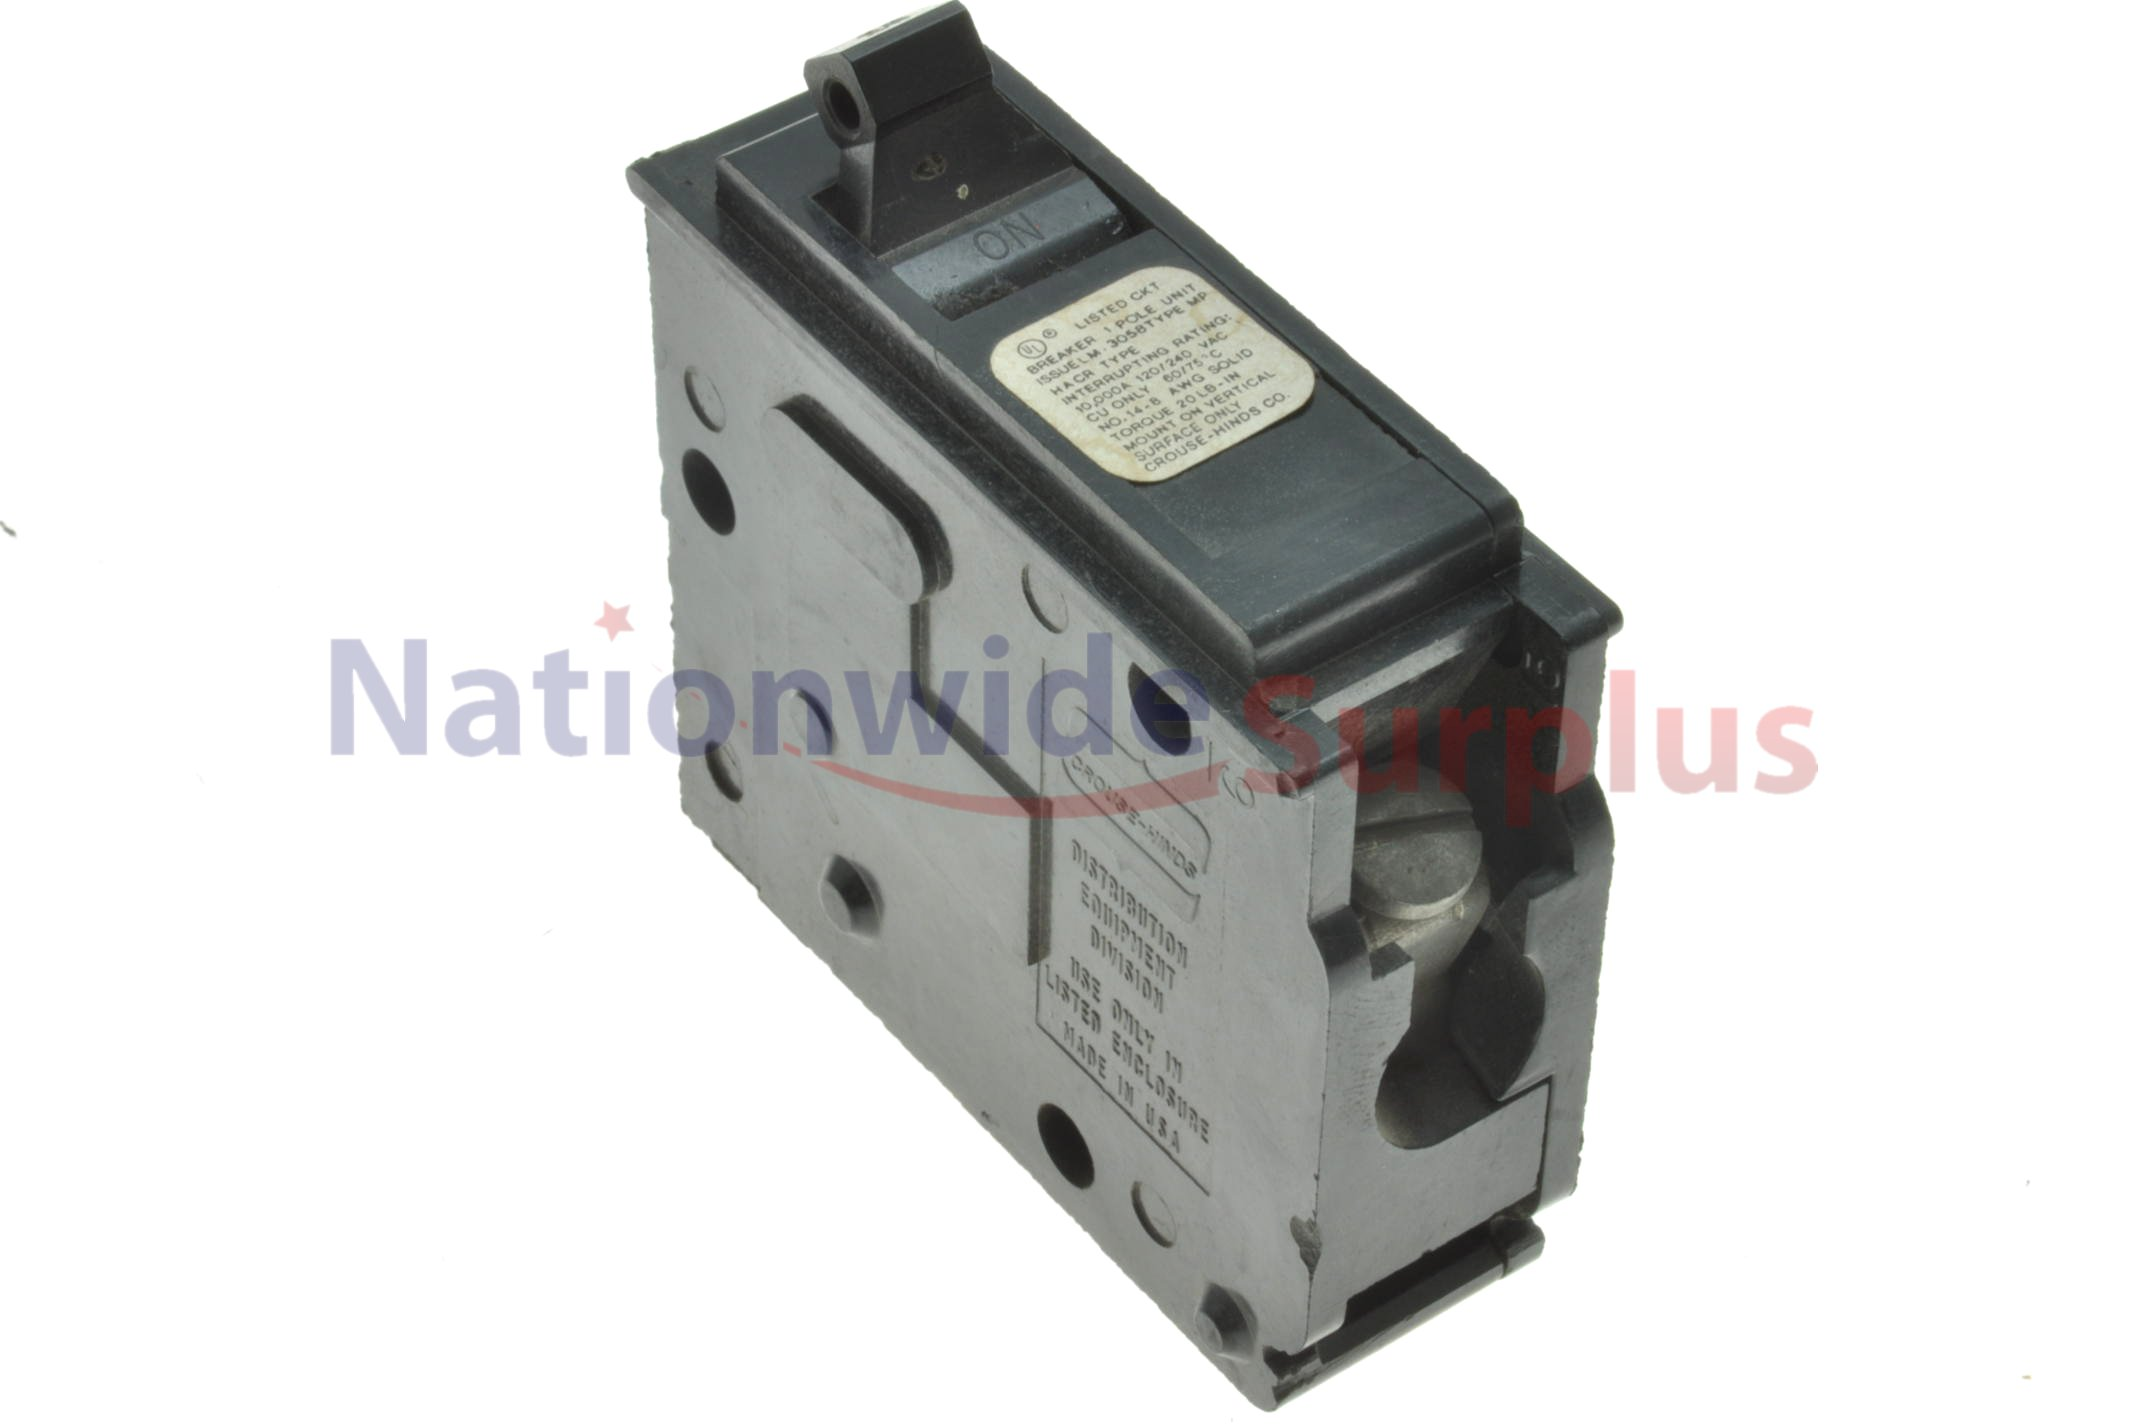 Crouse Hinds Breakers Mp2020 Murray Circuit Breaker New Used And Obsolete Crousehinds Type Mp 1 Pole 20 Amp Mp120